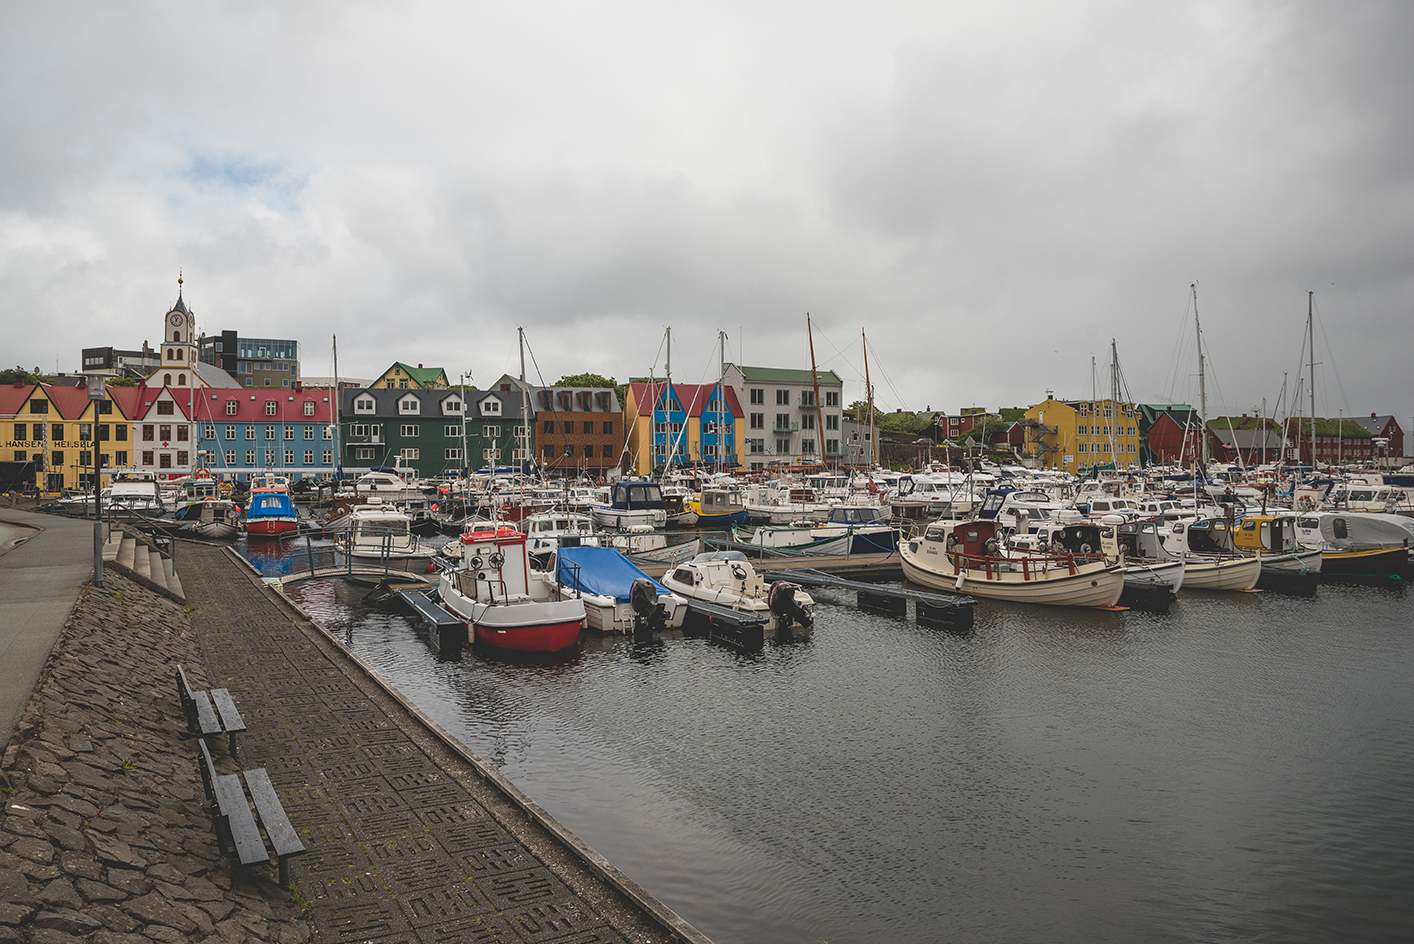 FaroeIslands_Day2_23-6-17_TAL-25.jpg